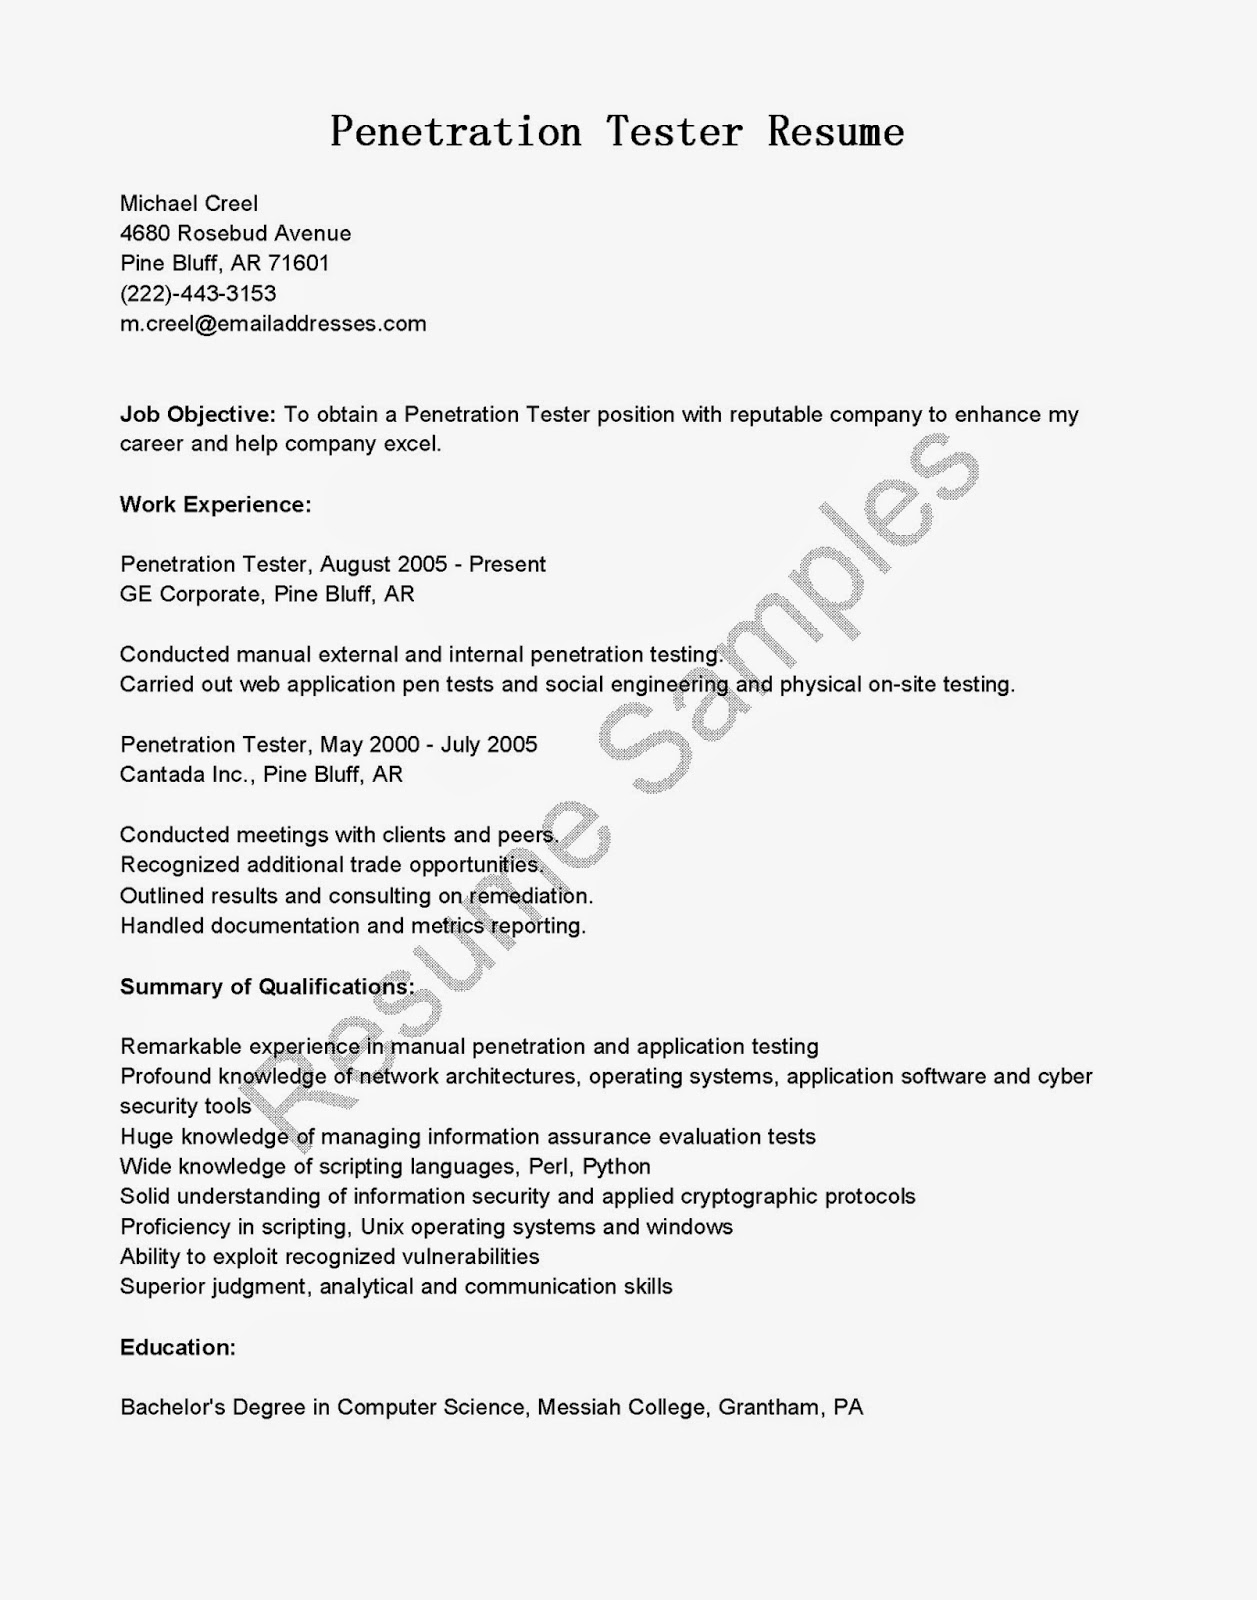 resume samples penetration tester resume sample - Microsoft Test Engineer Sample Resume